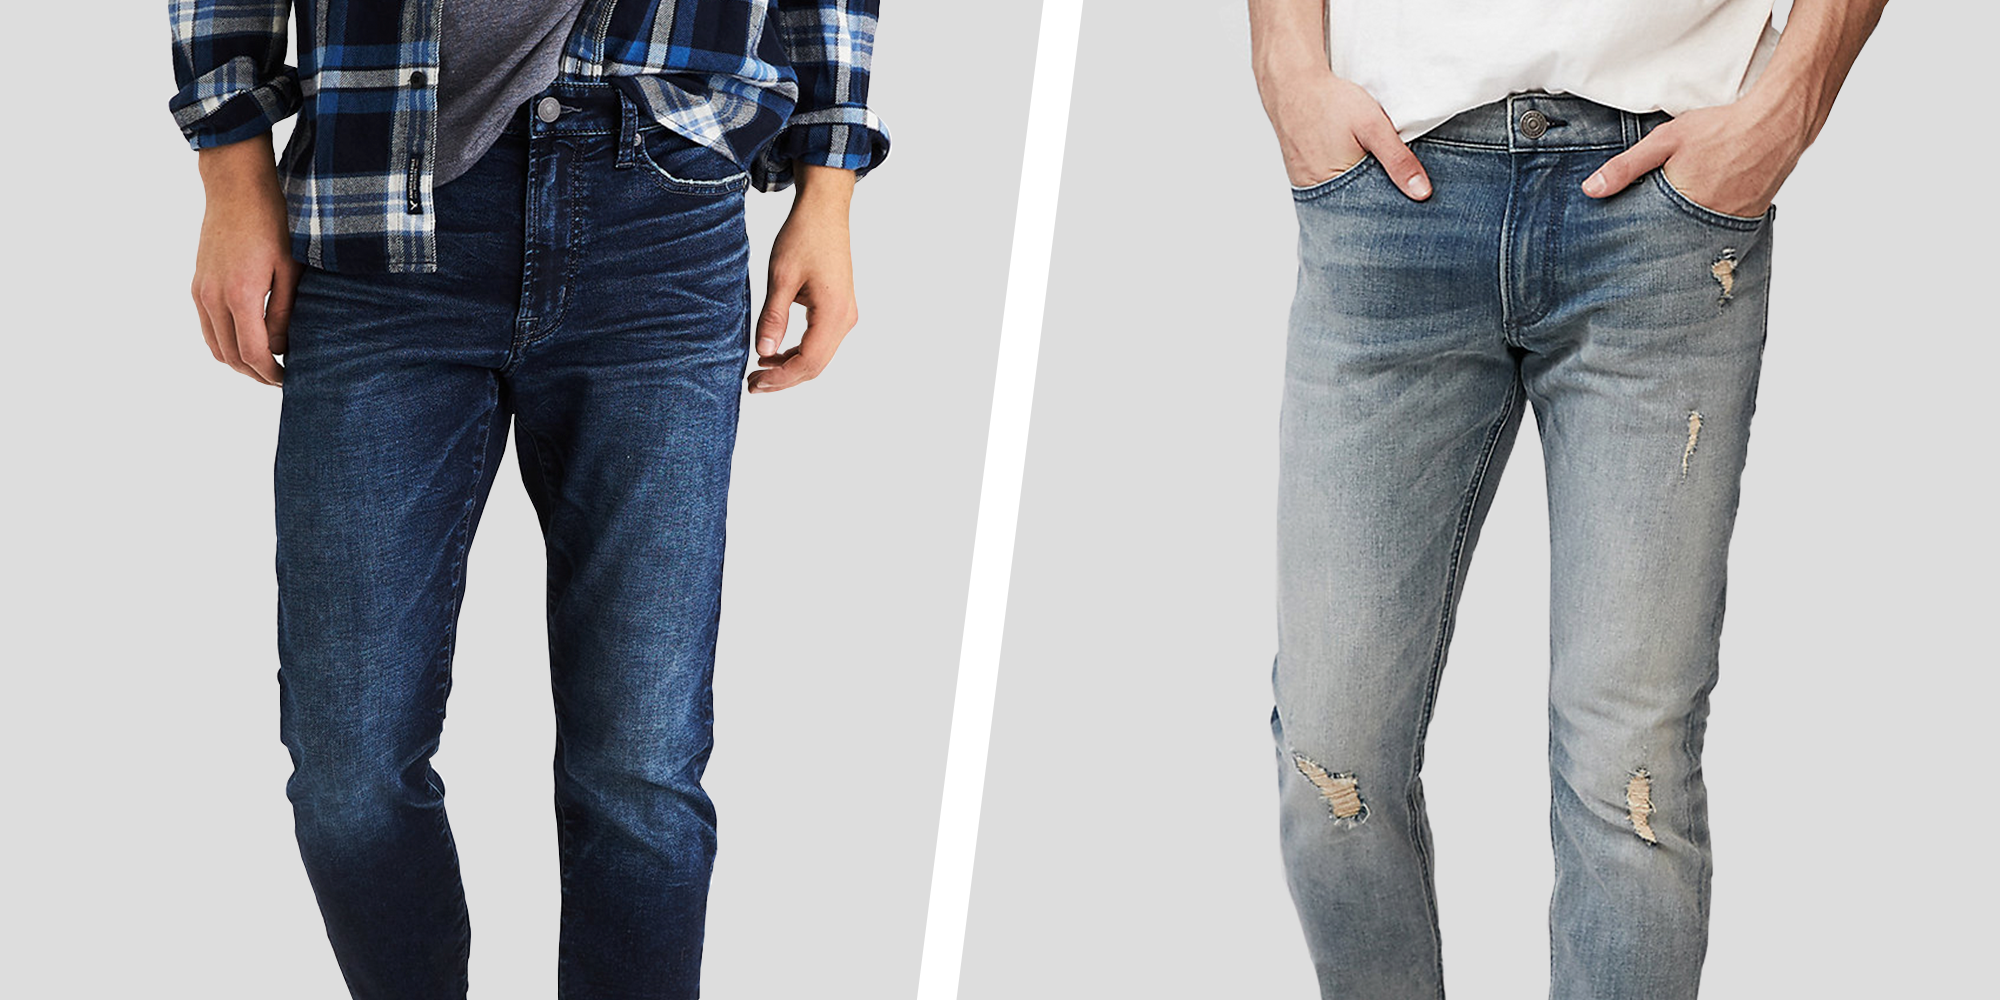 jeans the body most major standard pairs best comforter mens denim comfortable of types men style topman for fit